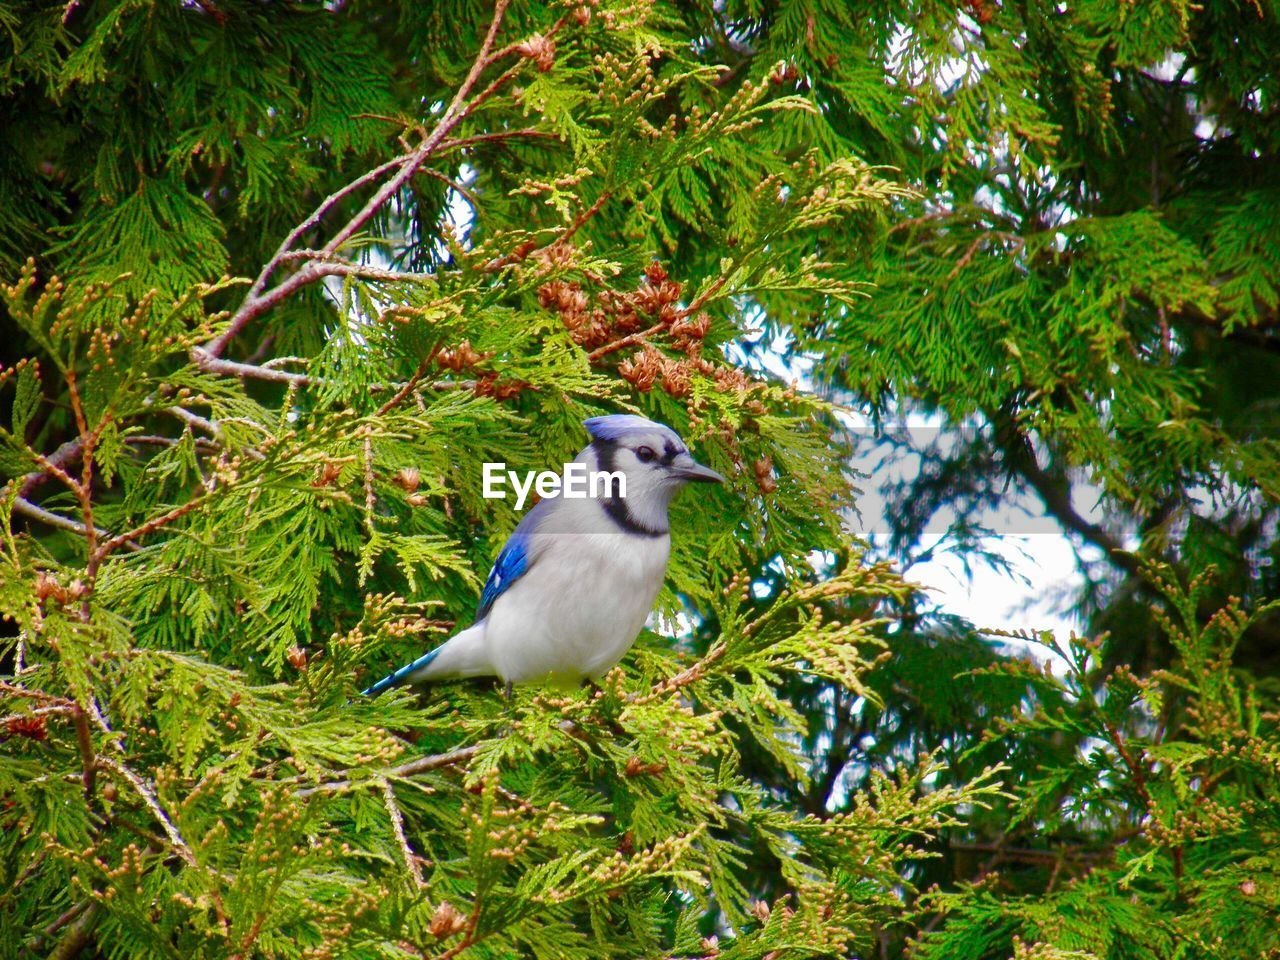 animal wildlife, animal themes, animal, vertebrate, bird, one animal, plant, animals in the wild, tree, perching, green color, day, no people, nature, growth, branch, low angle view, beauty in nature, outdoors, leaf